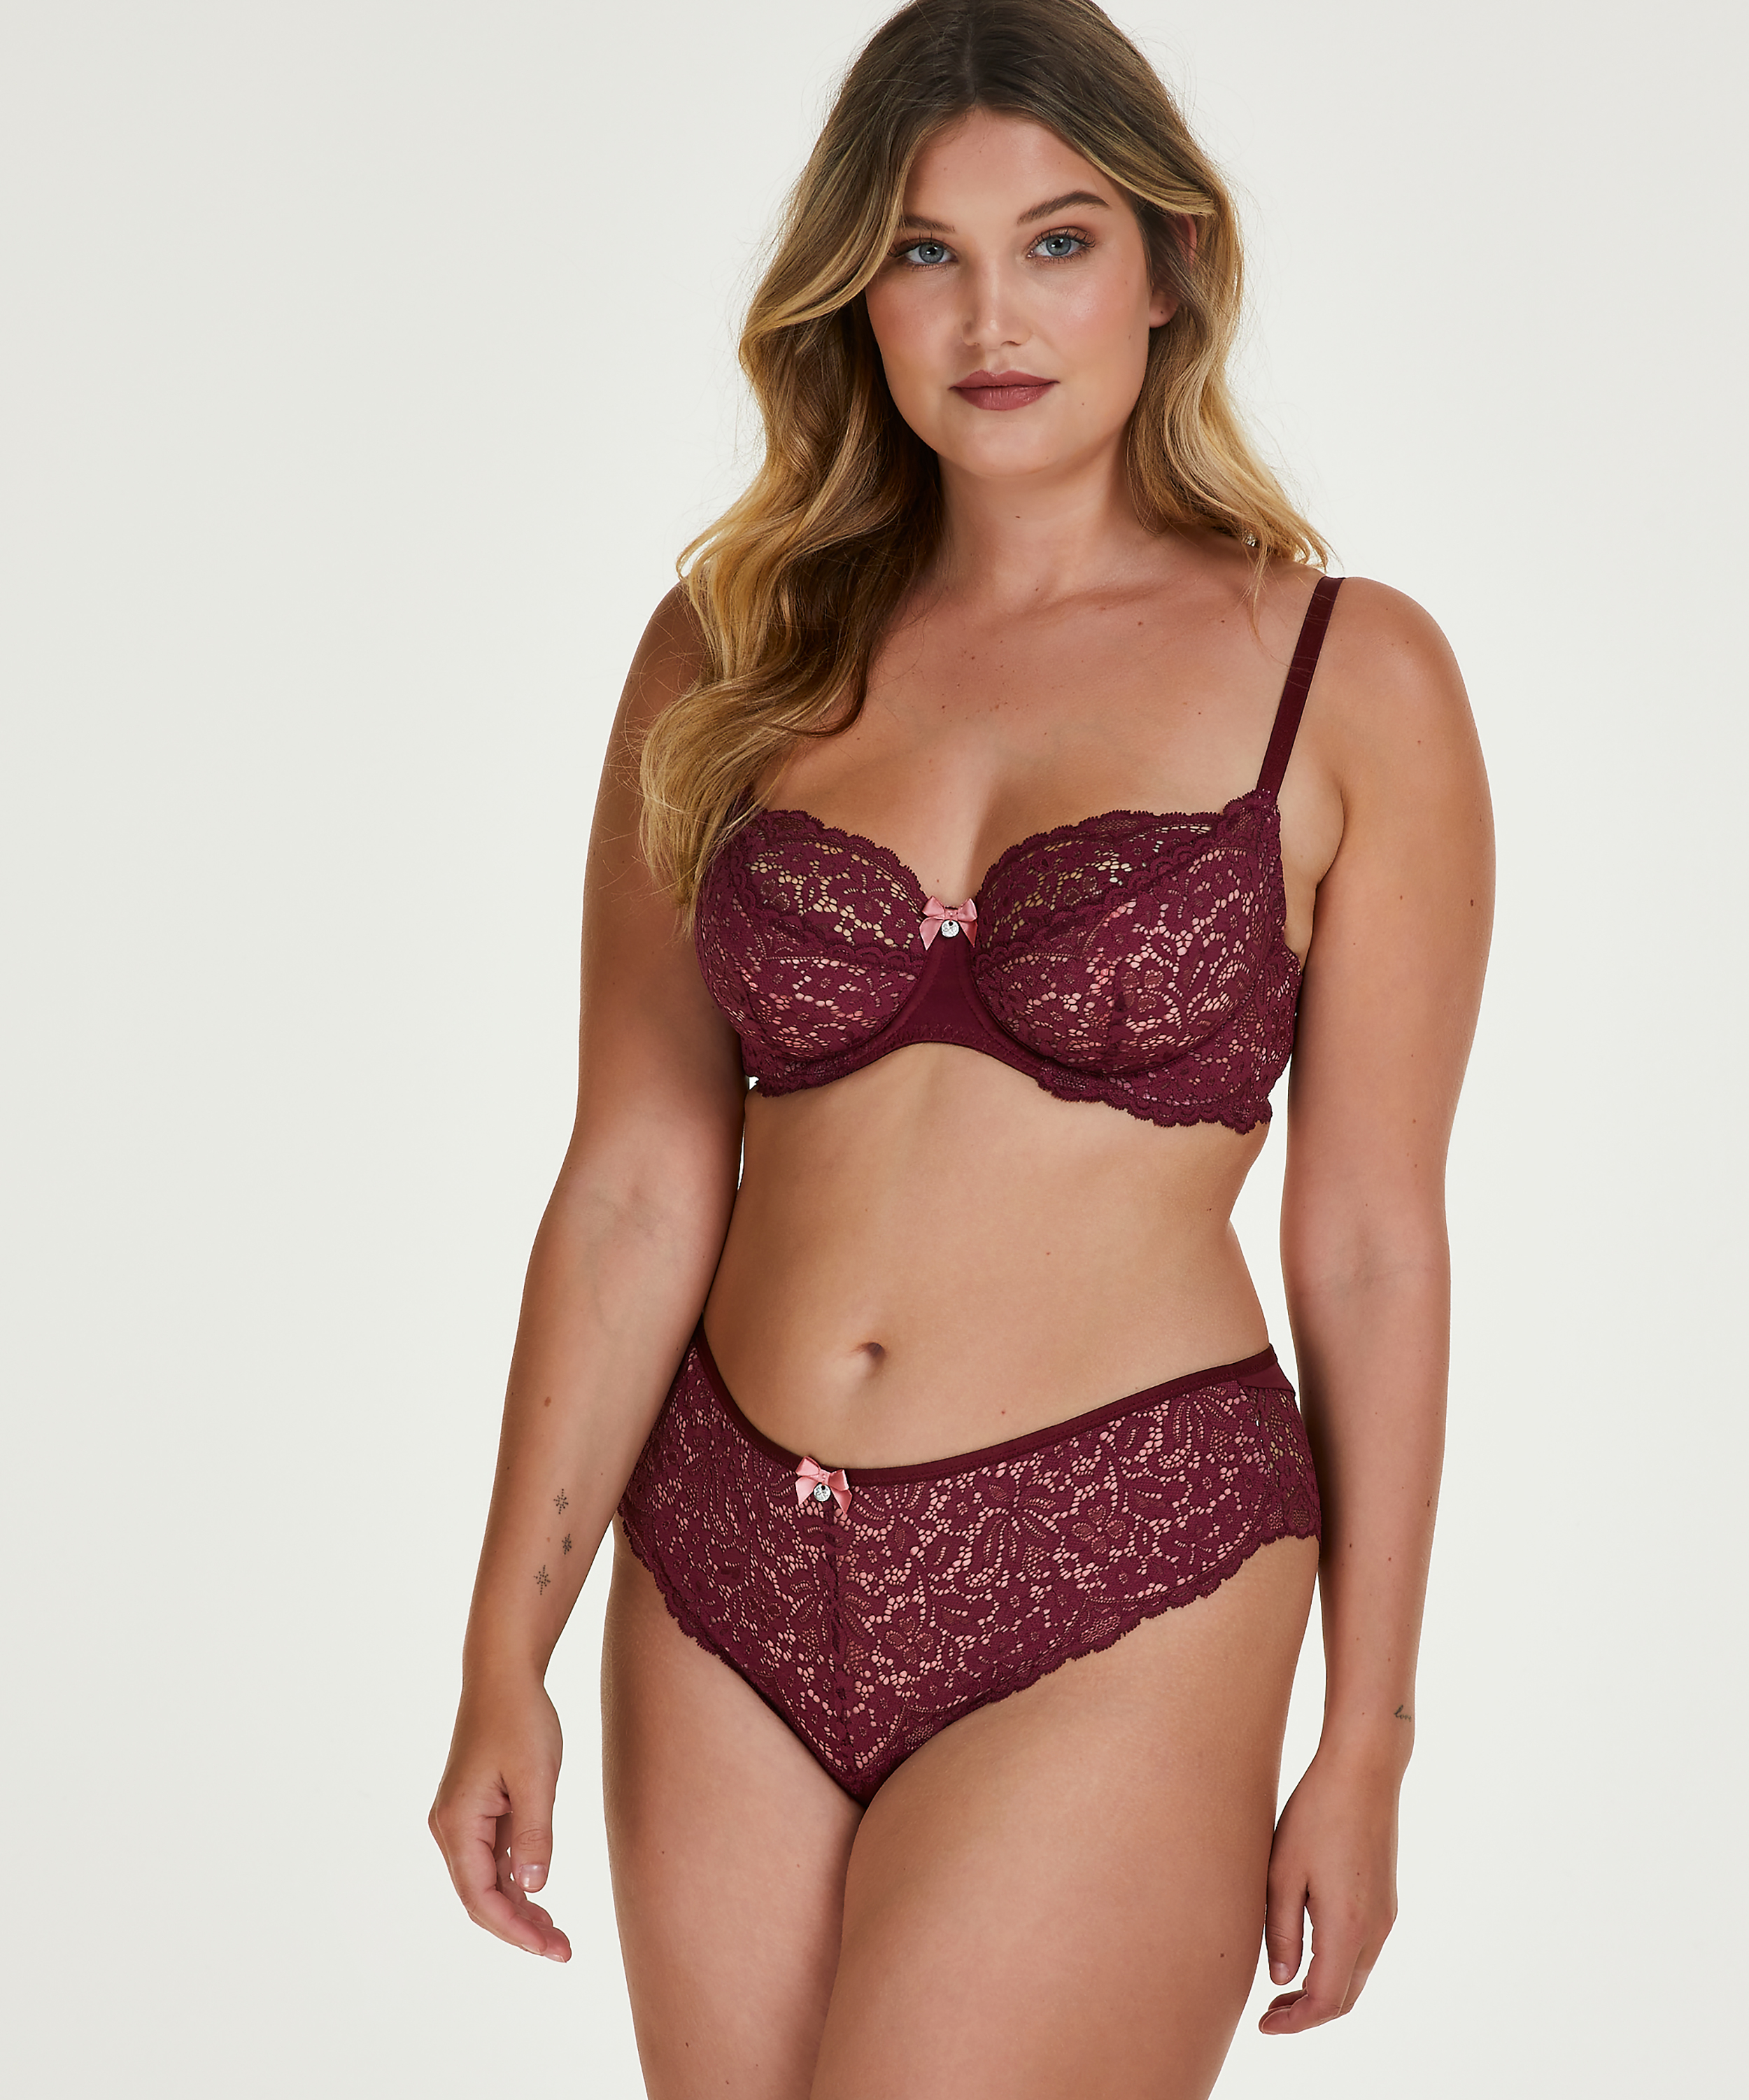 Rose Non-Padded Underwired Bra, Red, main